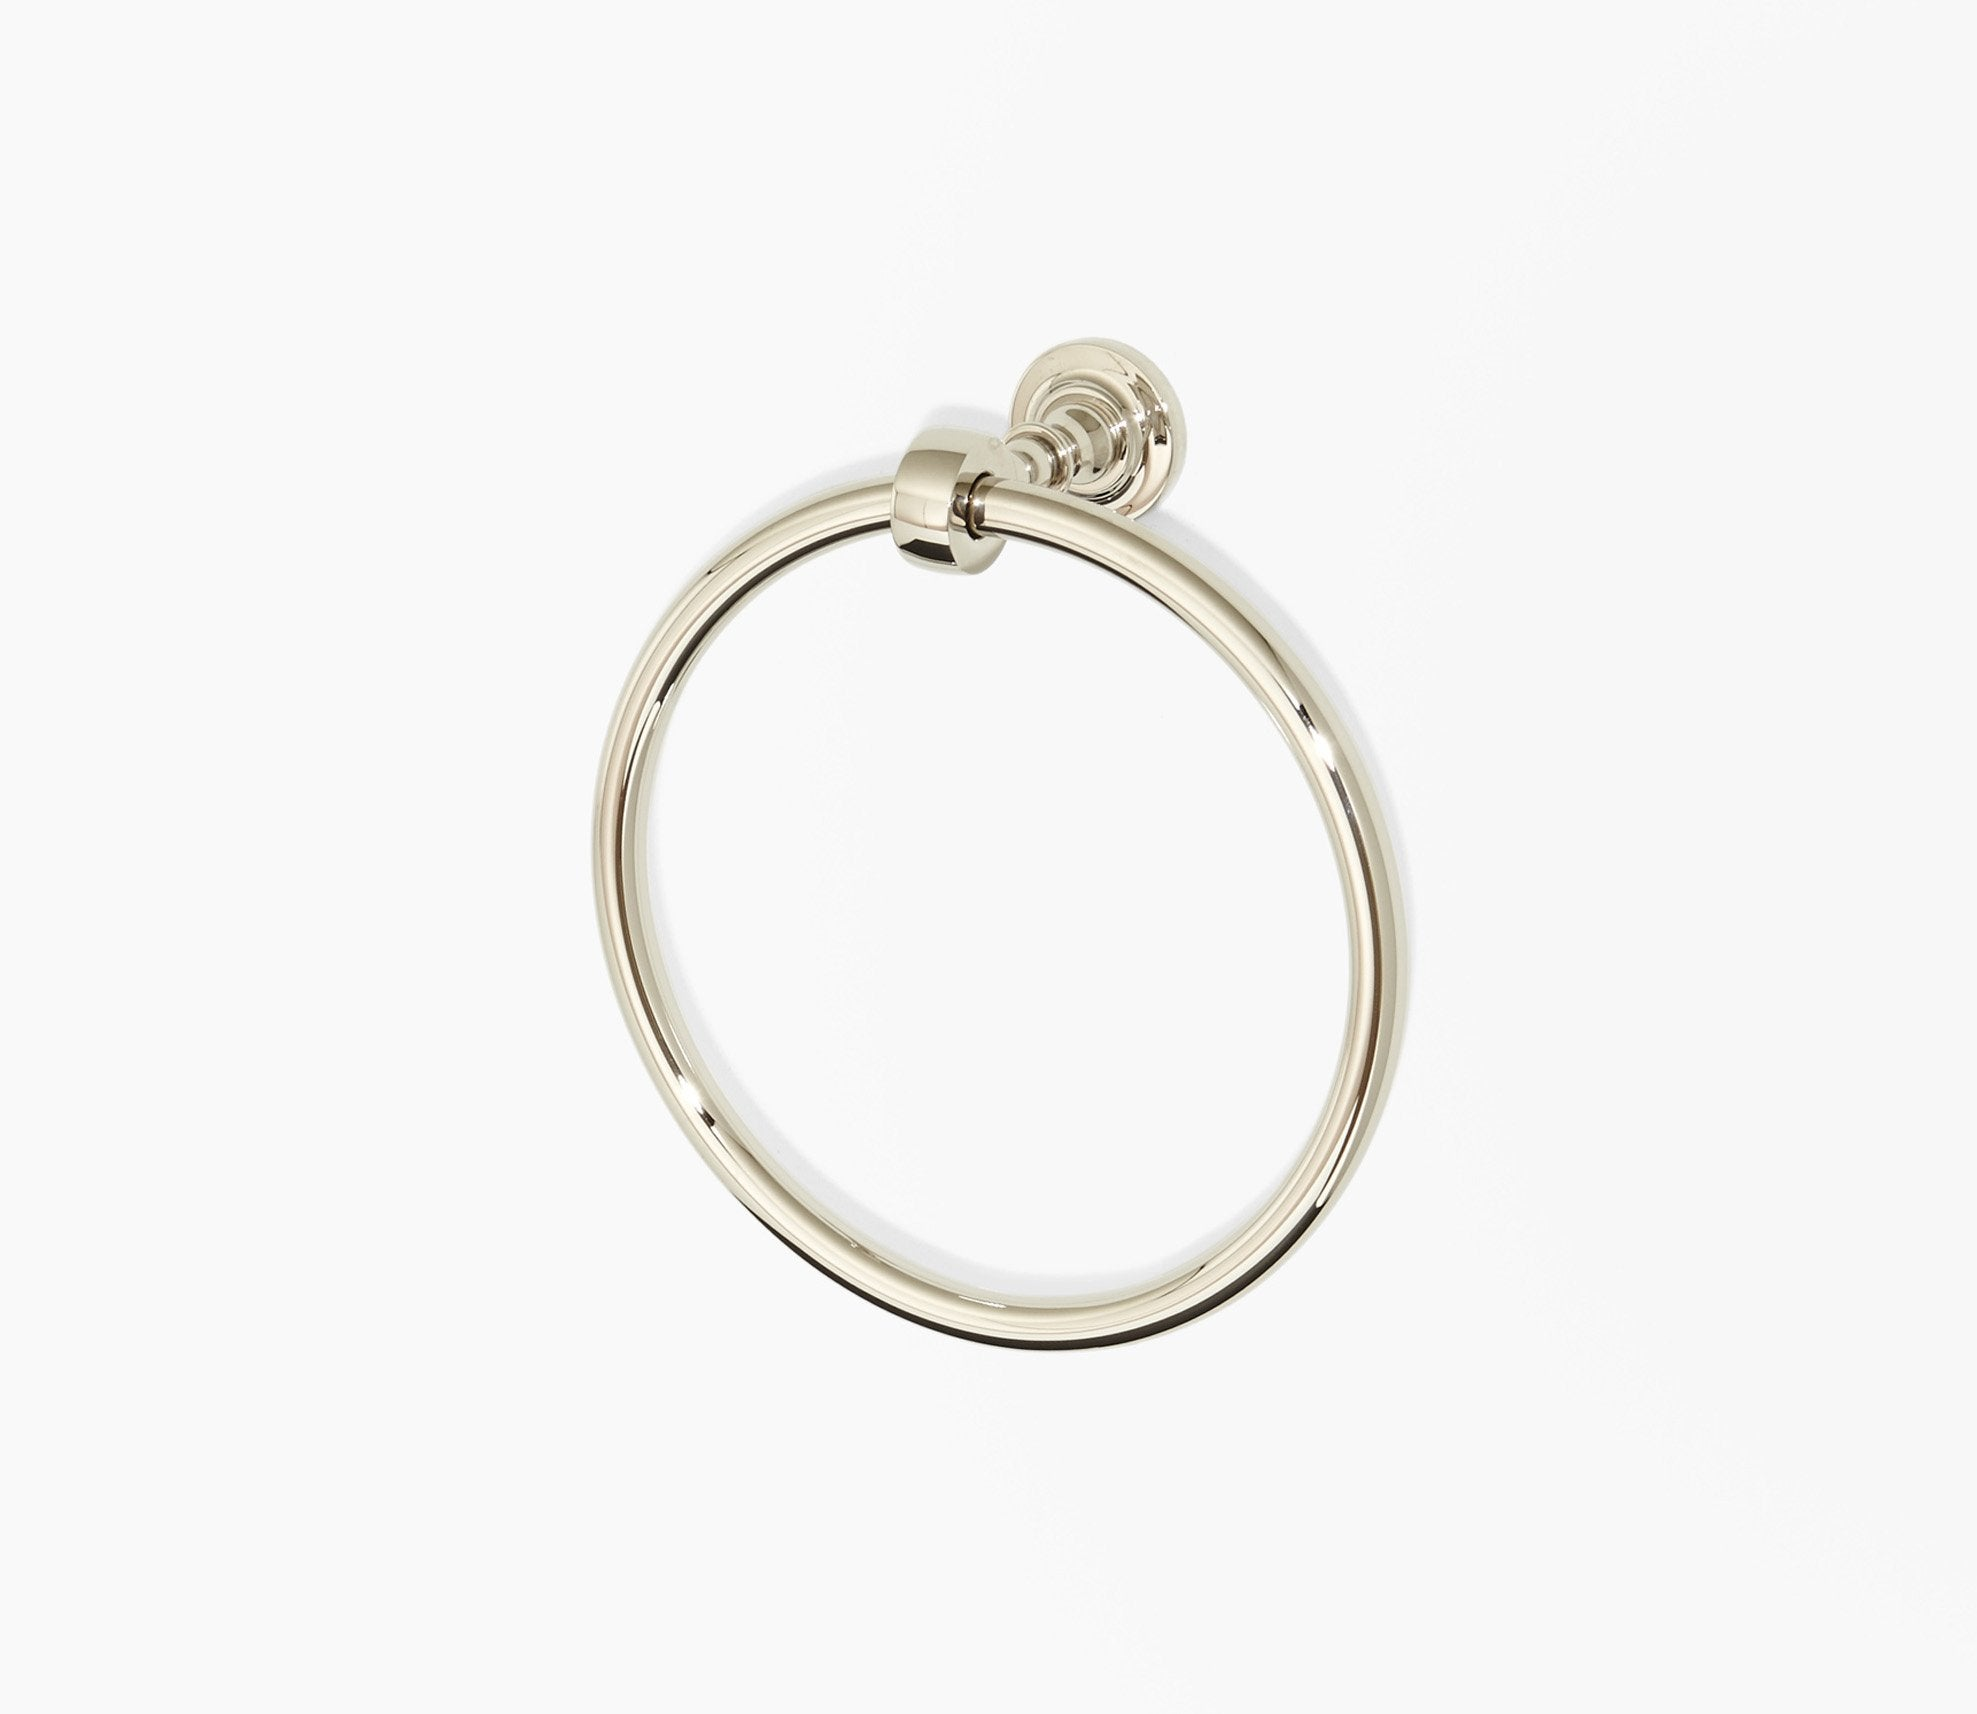 Hanbury Towel Ring Product Image 1